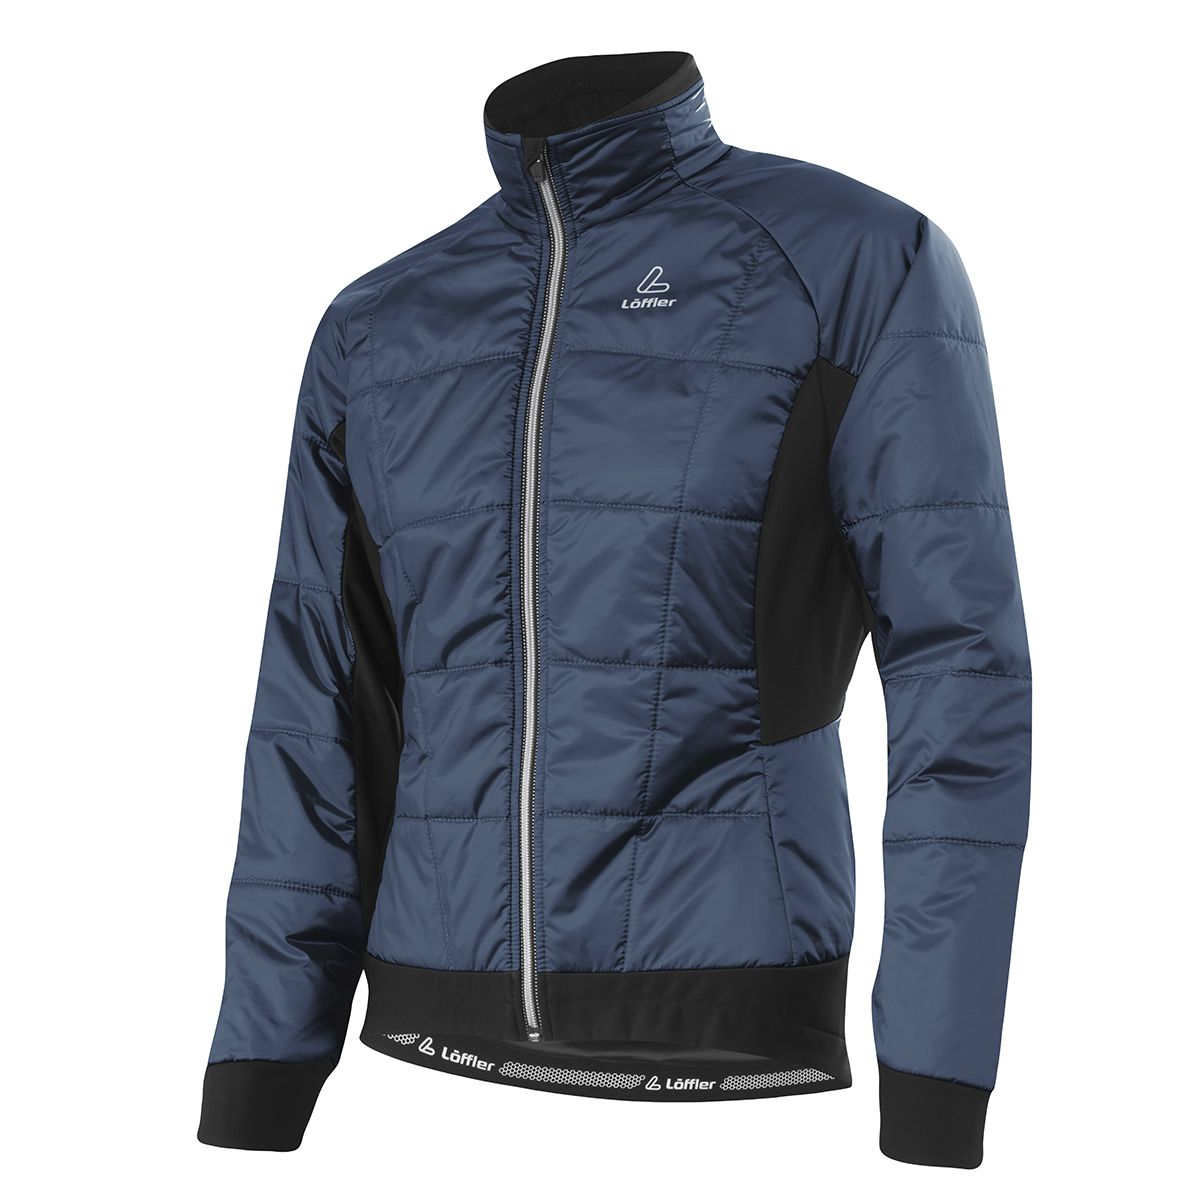 PRIMALOFT MIX women's winter jacket